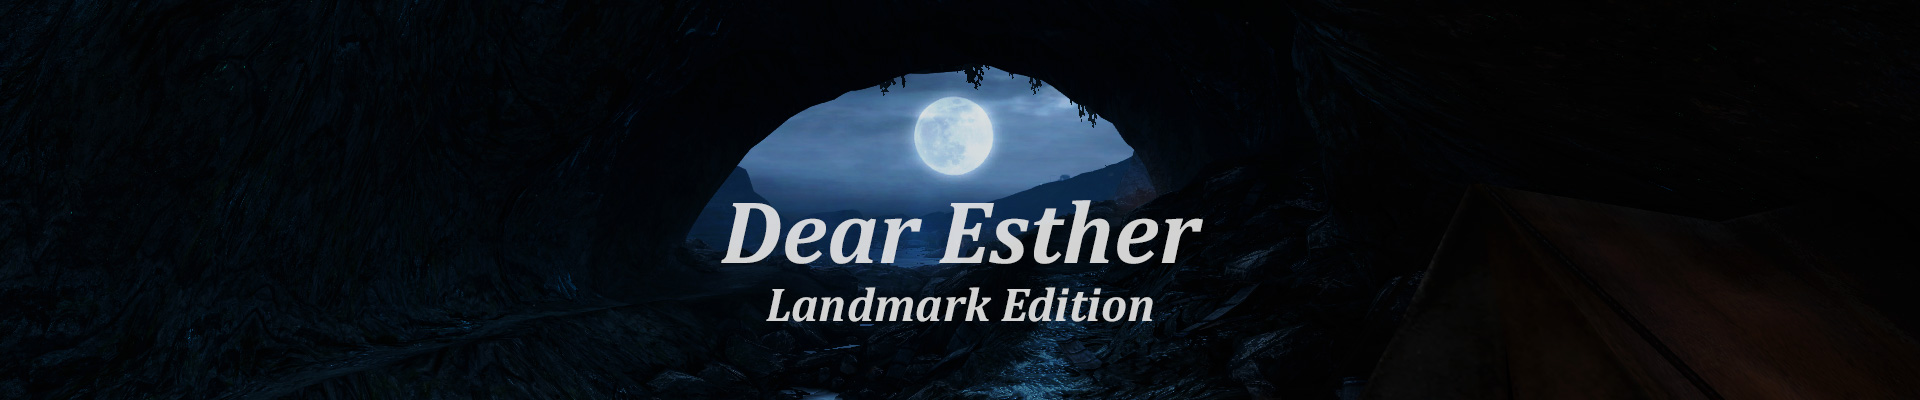 Thoughts on: Dear Esther. Landmark Edition